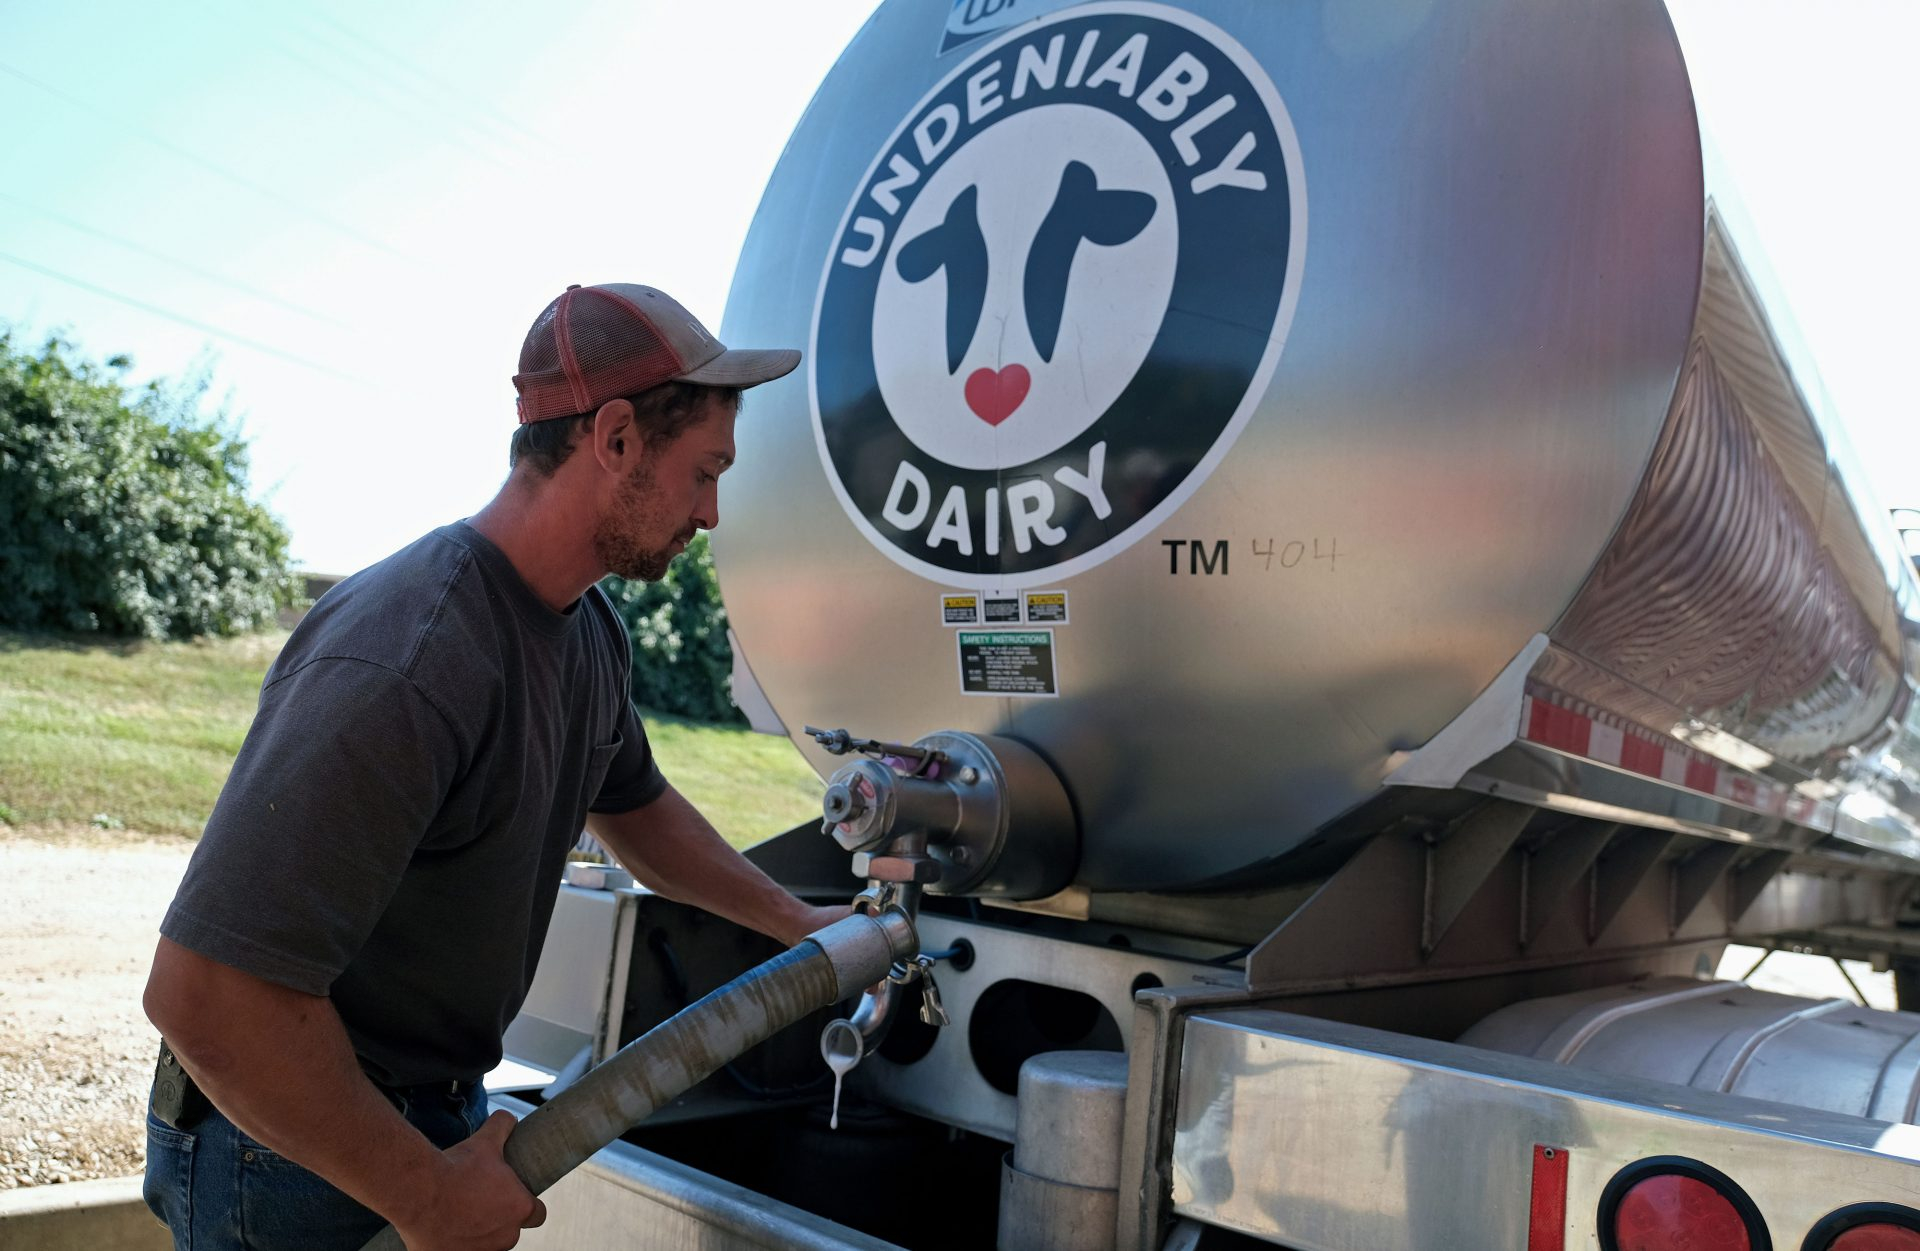 Brian Kuntzman, of Pottstown, works on filling a tanker truck with milk for delivery Sept. 25, 2019, at Ar-Joy Farms in West Fallowfield Township, Pennsylvania.